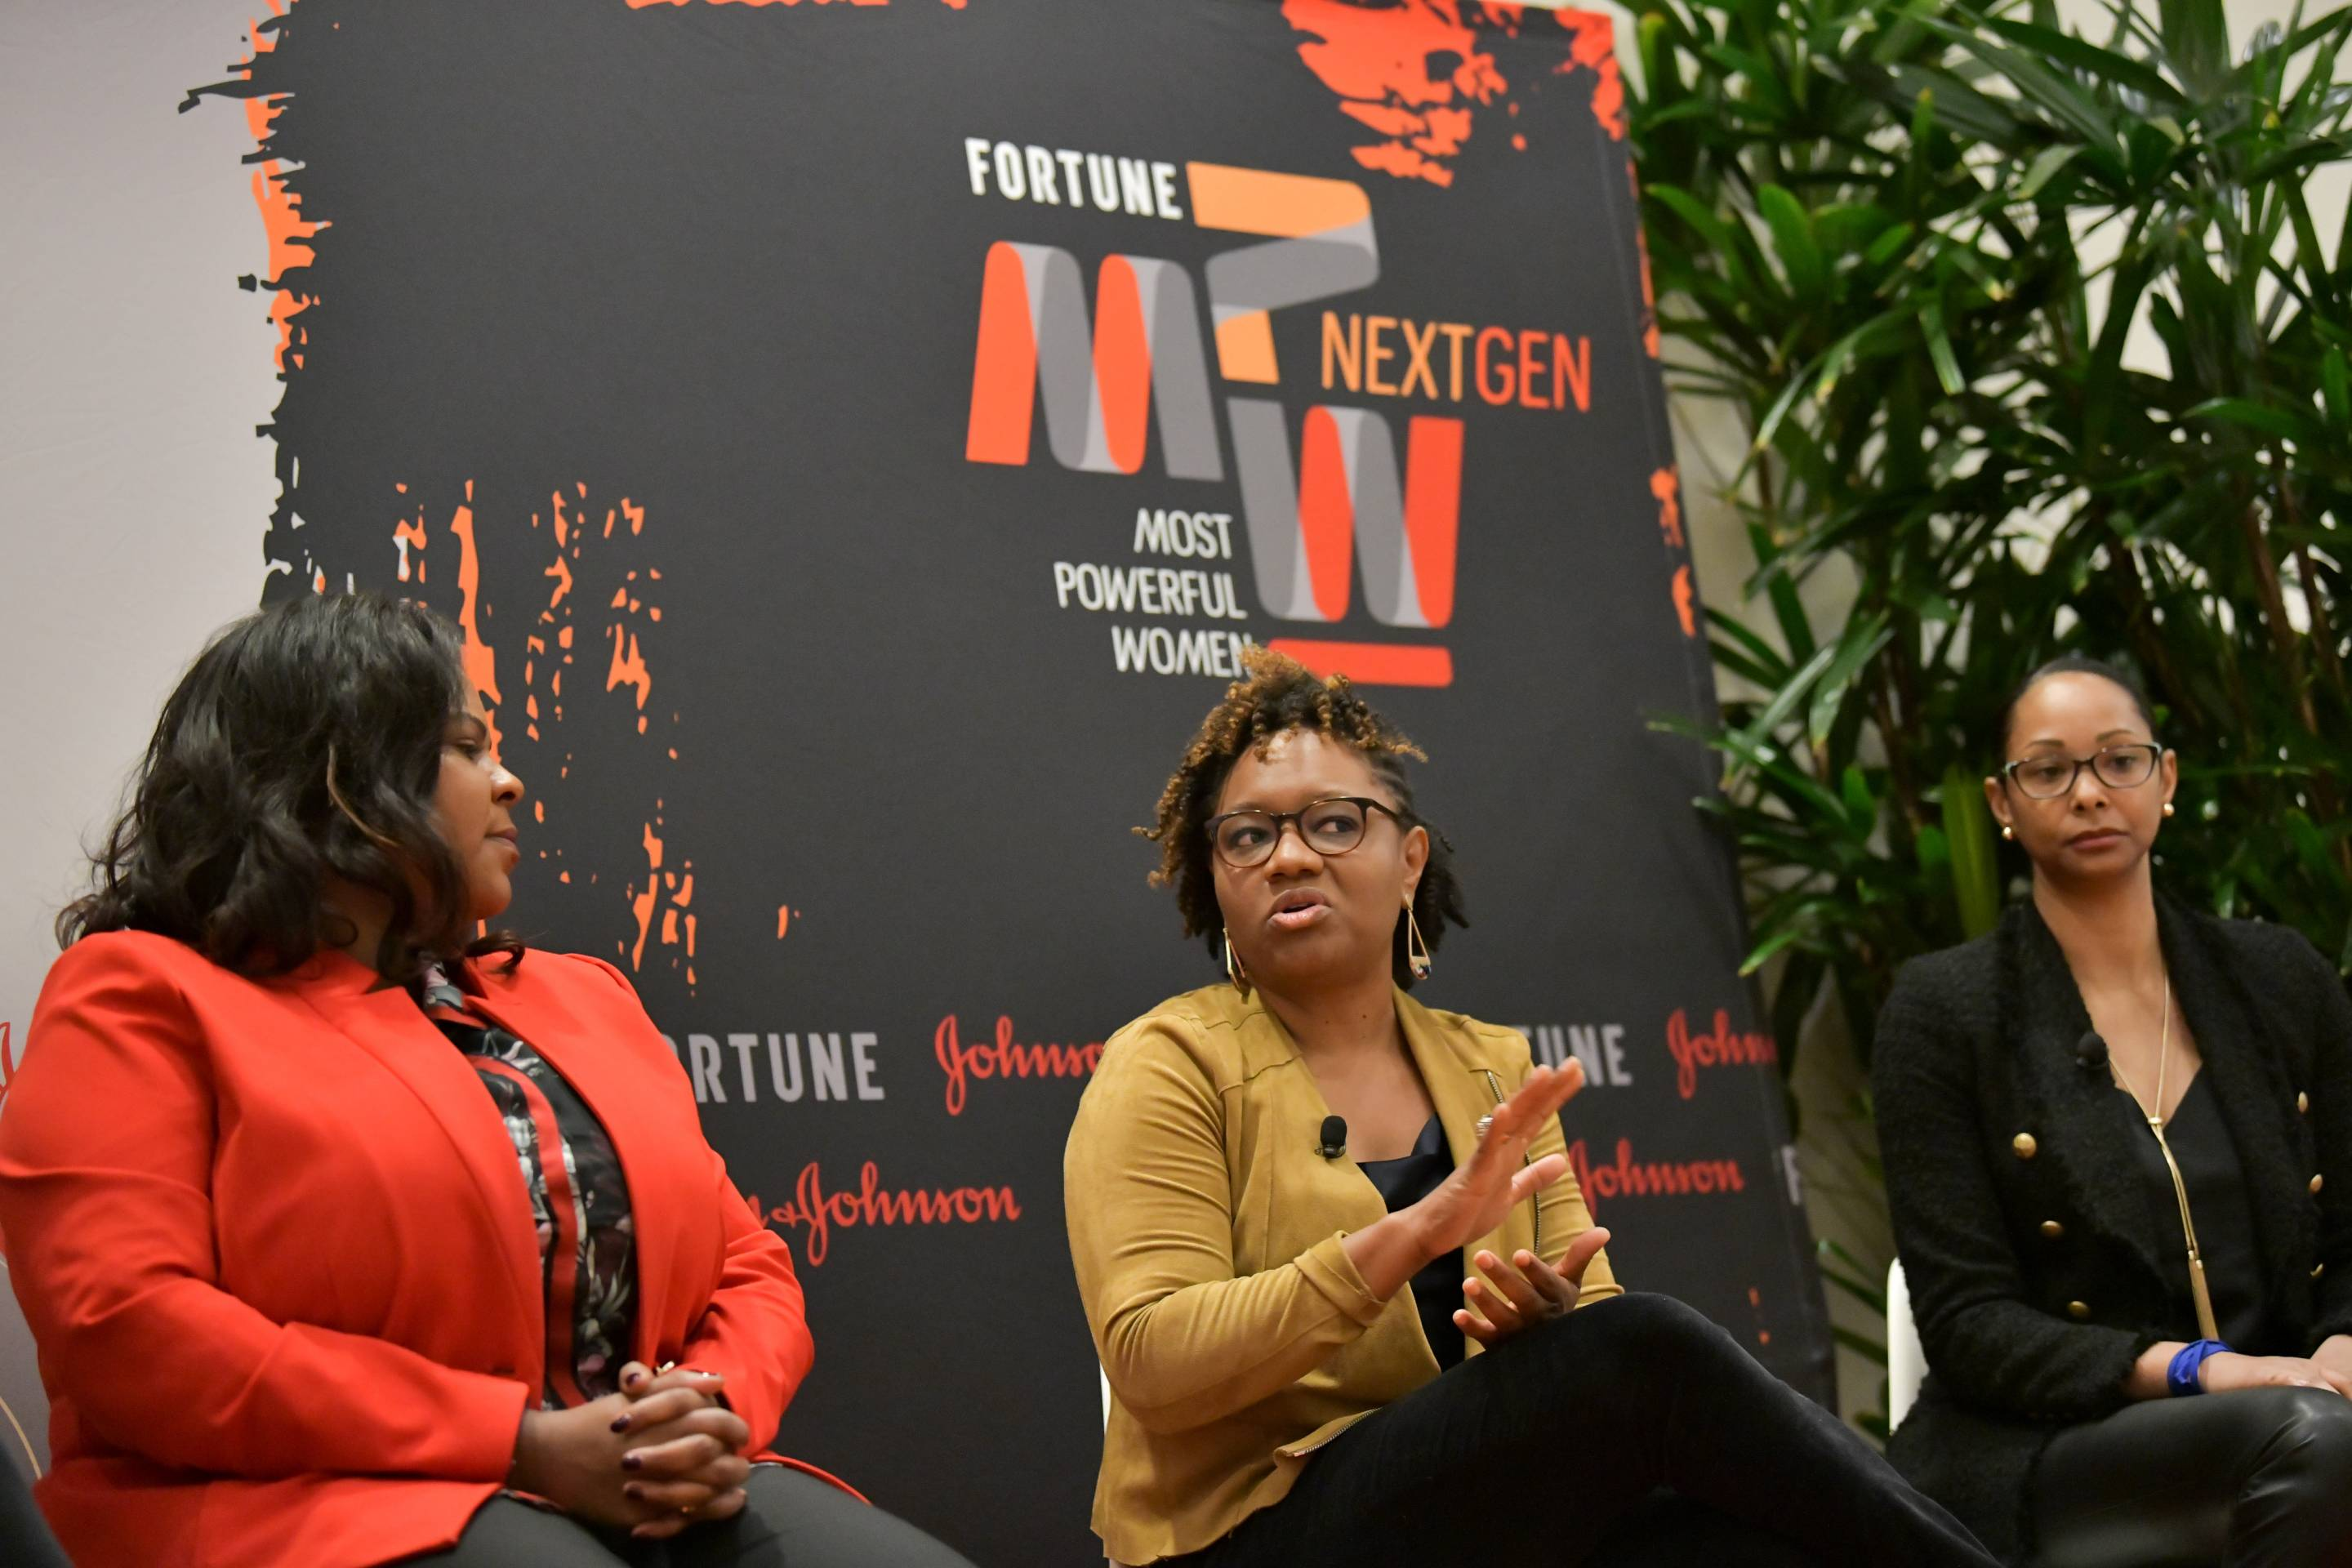 Molly Ford of Salesforce, Rashida Hodge of IBM, and Bärí Williams of All Turtles discuss how to create diverse and inclusive workplaces at Fortune's MPW Next Gen Summit in Laguna Niguel, Calif.